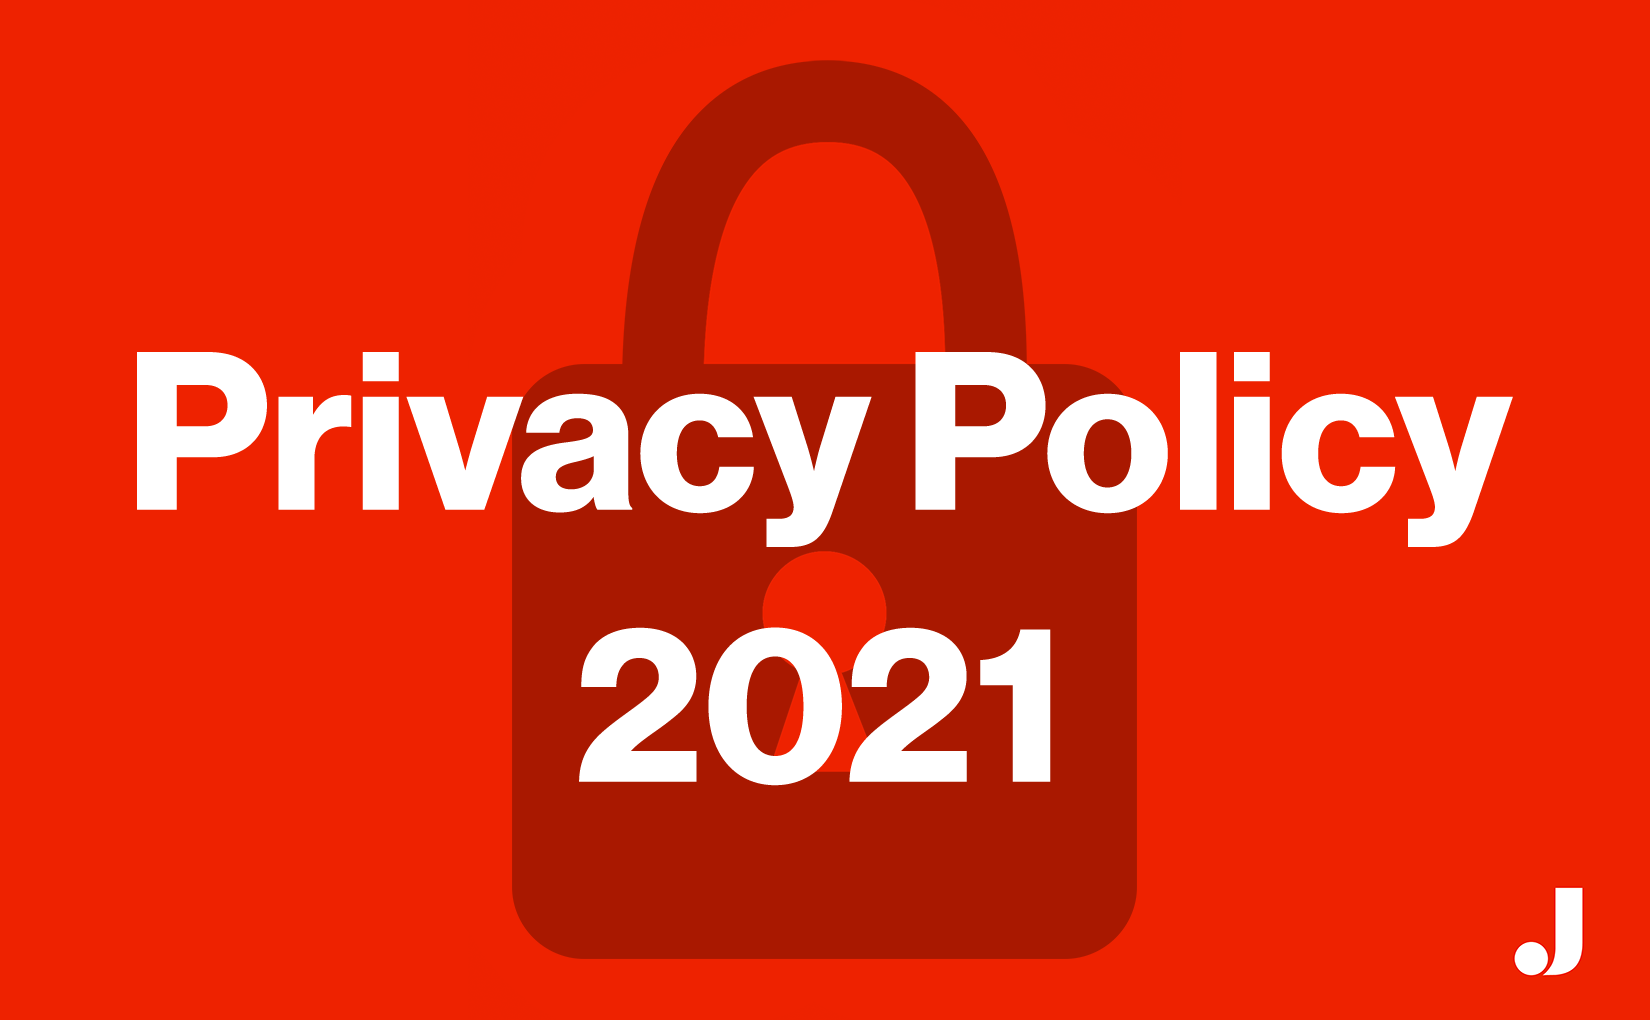 What Do I Need in My Privacy Policy in 2021?